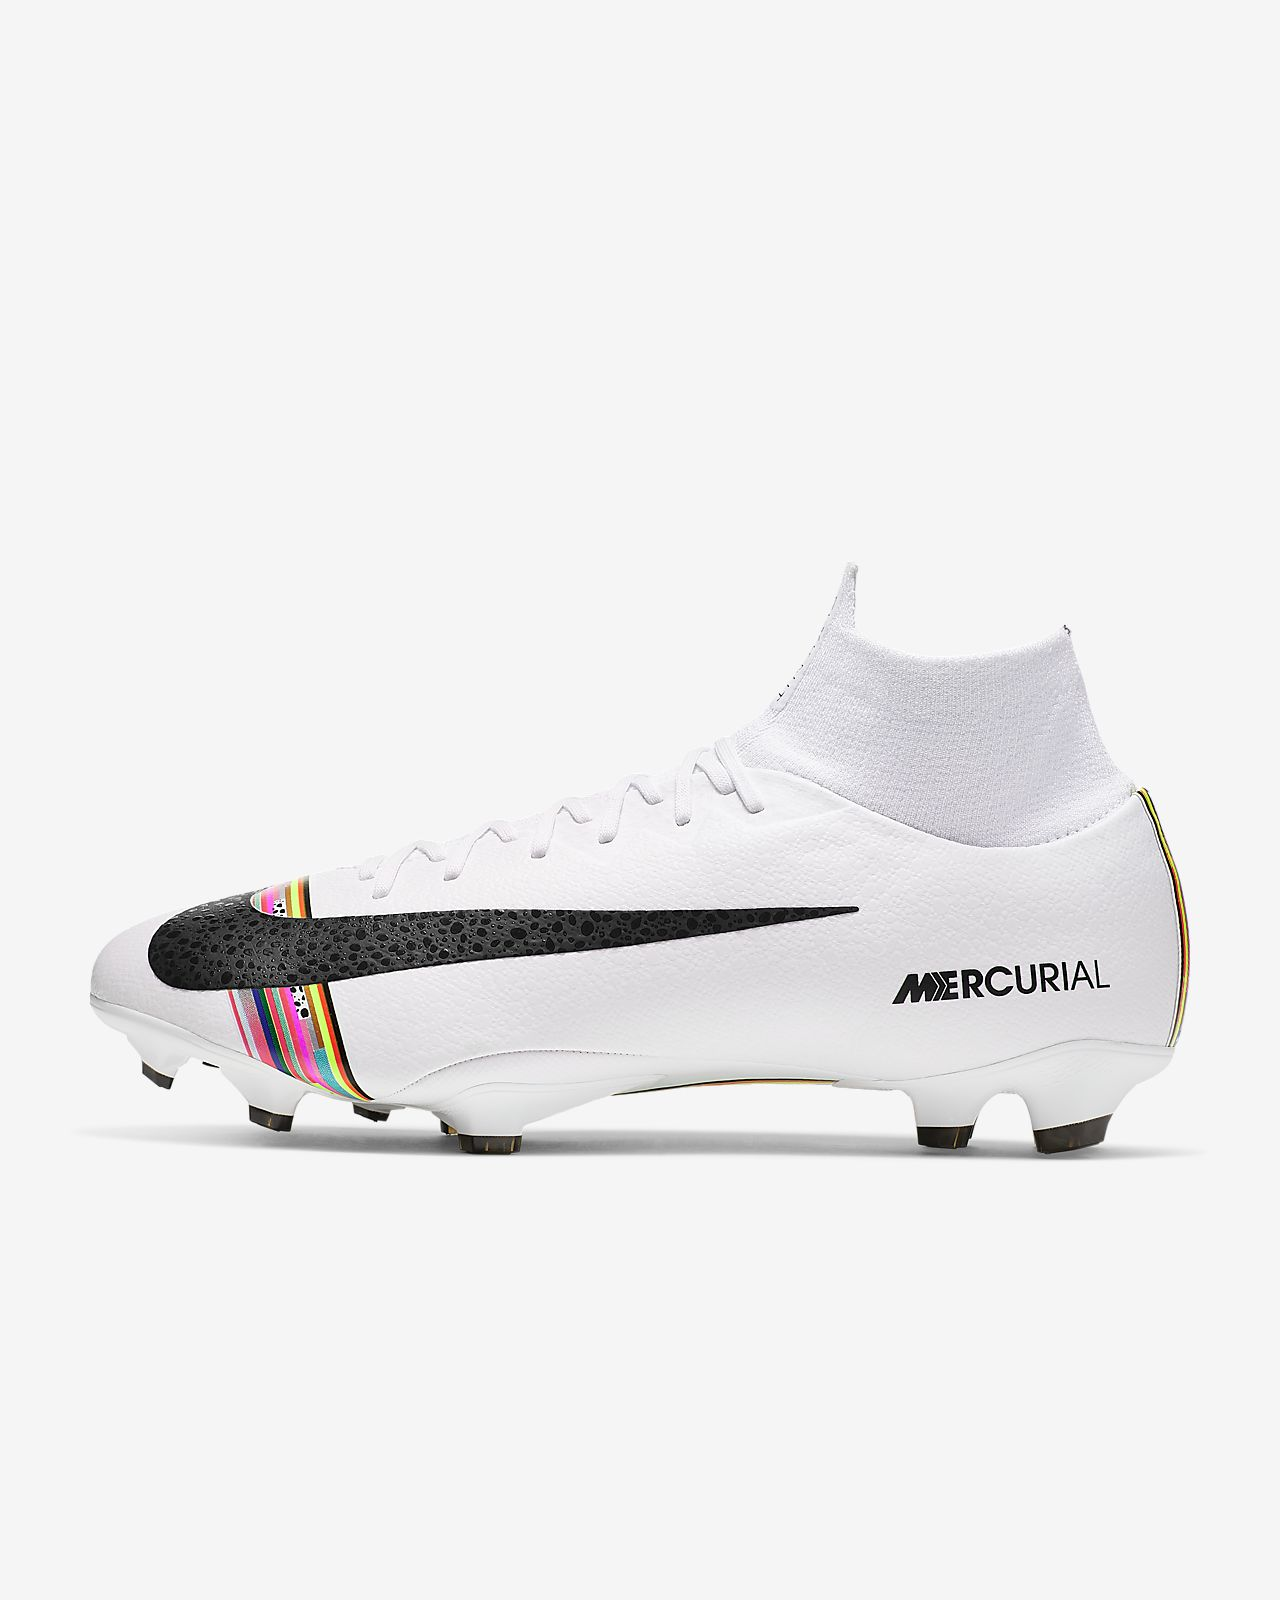 Chaussure de football à crampons pour terrain sec Nike Superfly 6 Pro LVL UP FG